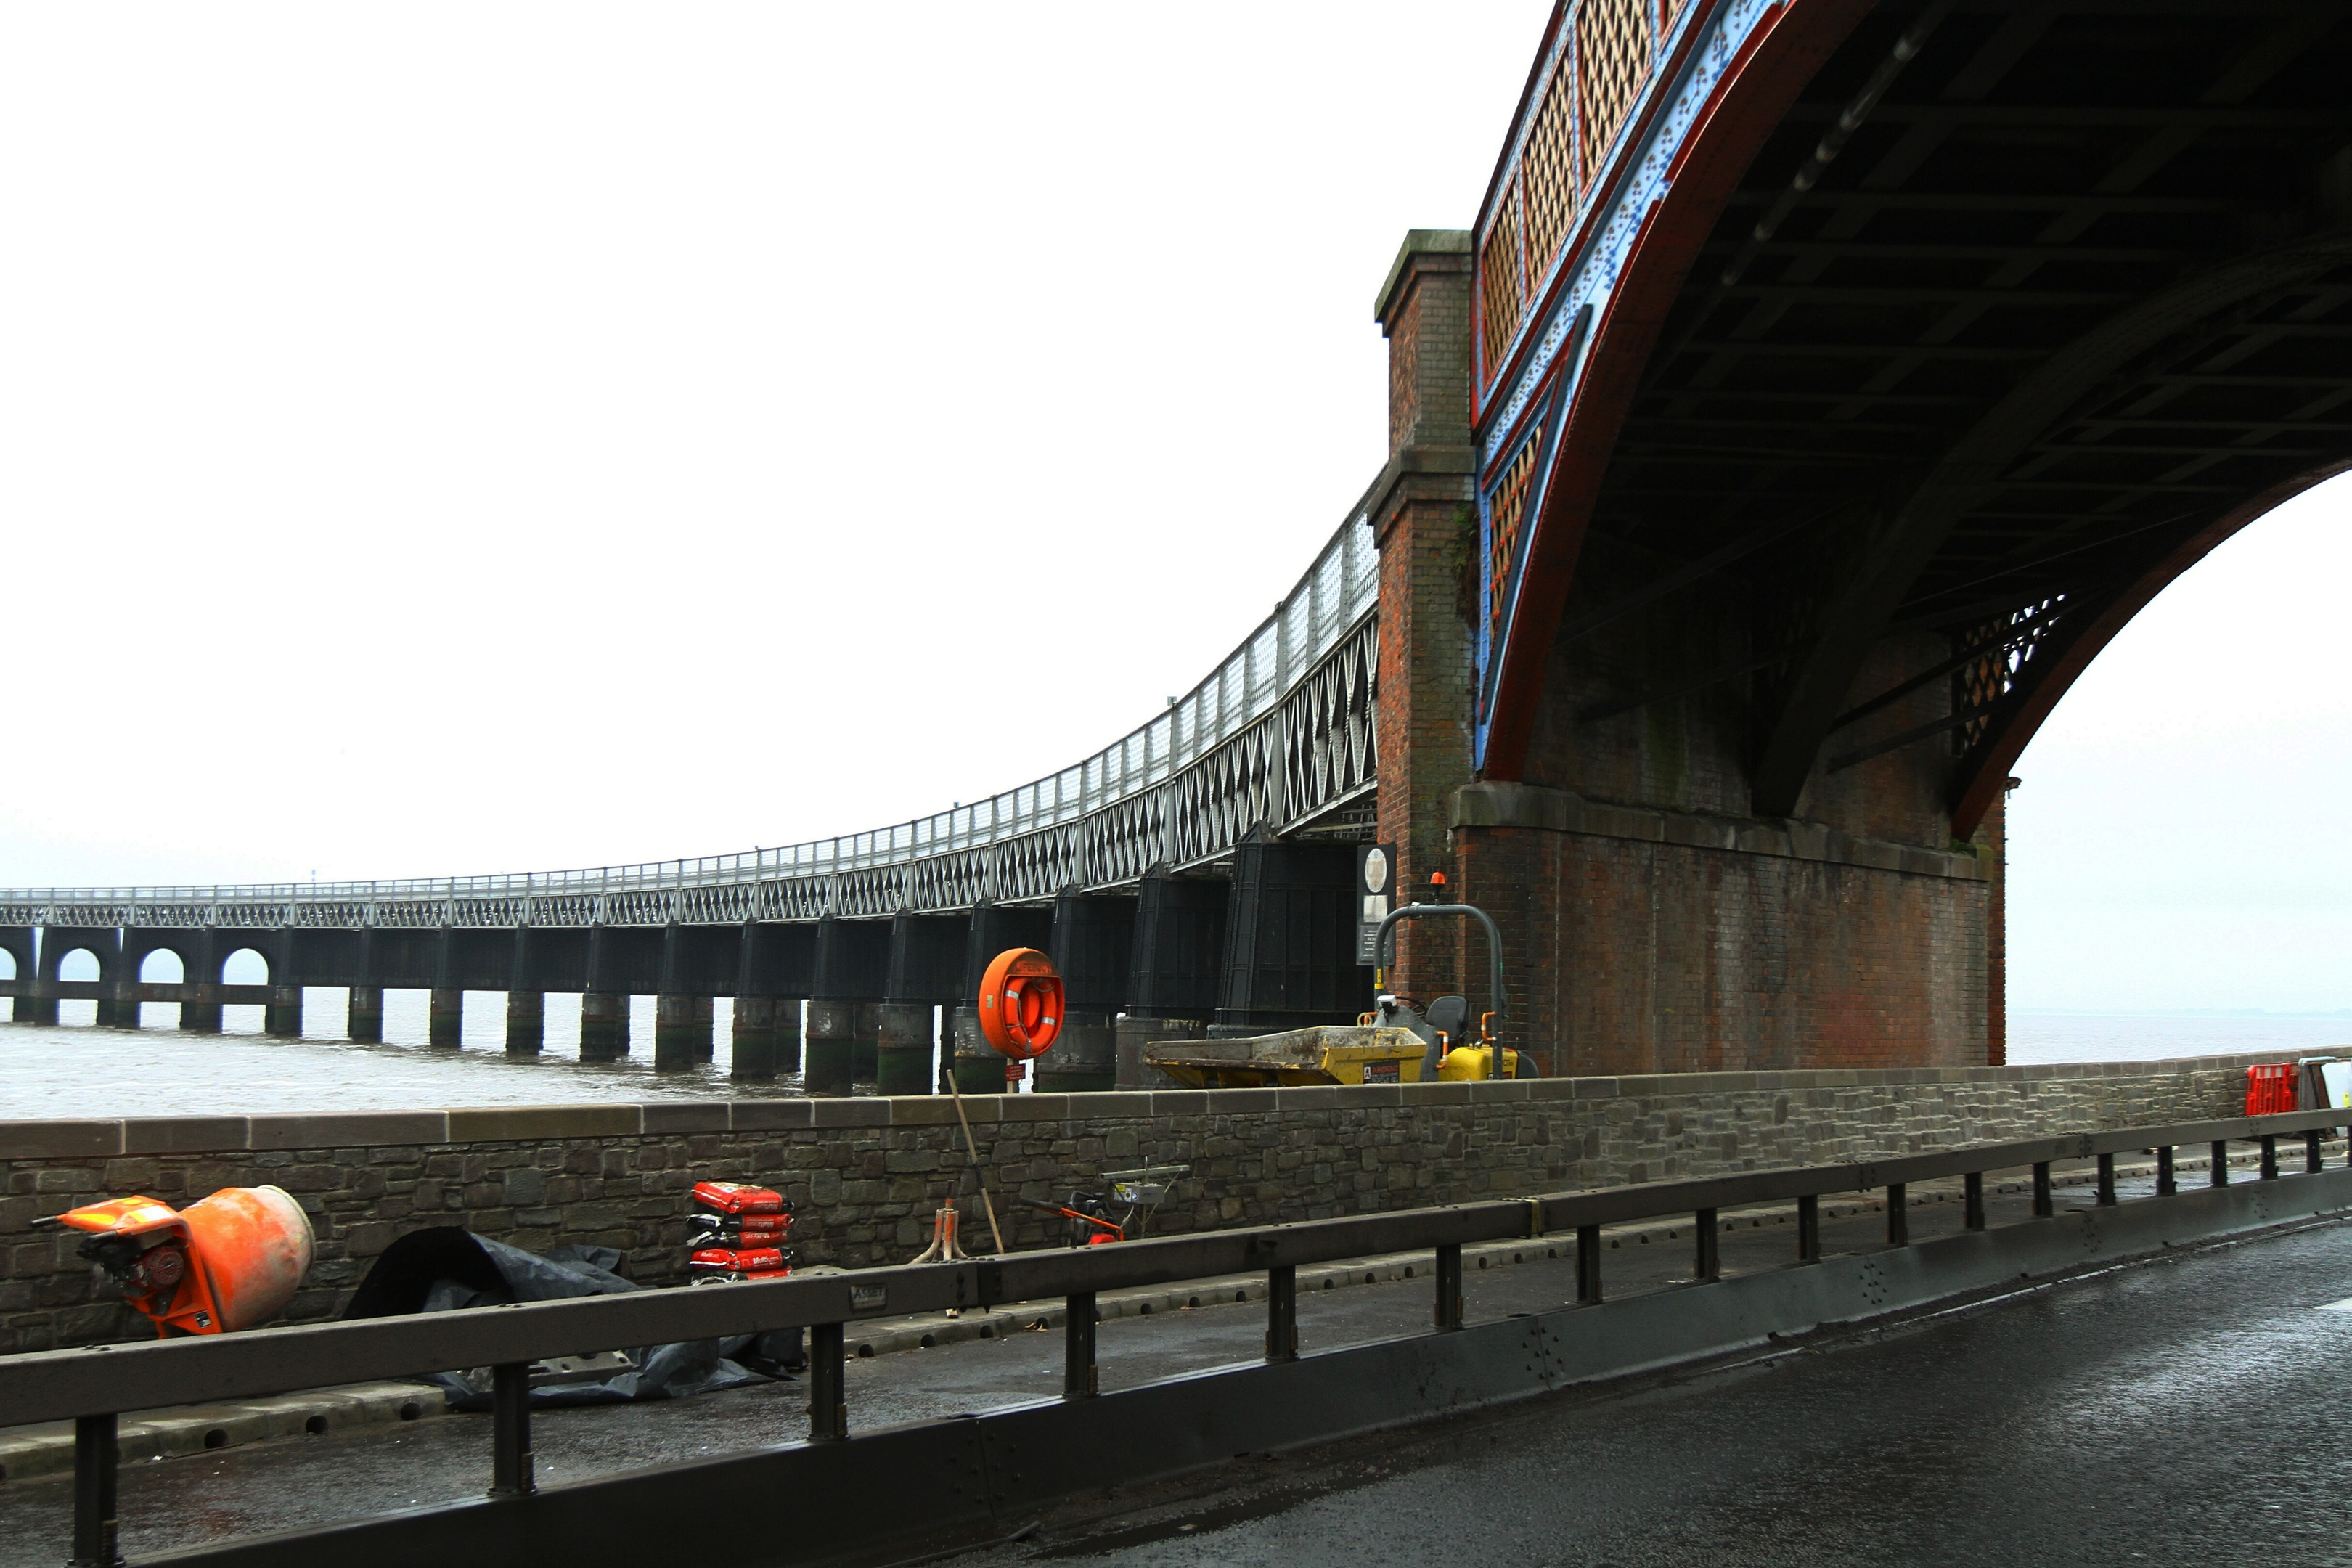 The flood wall at Riverside Drive in Dundee